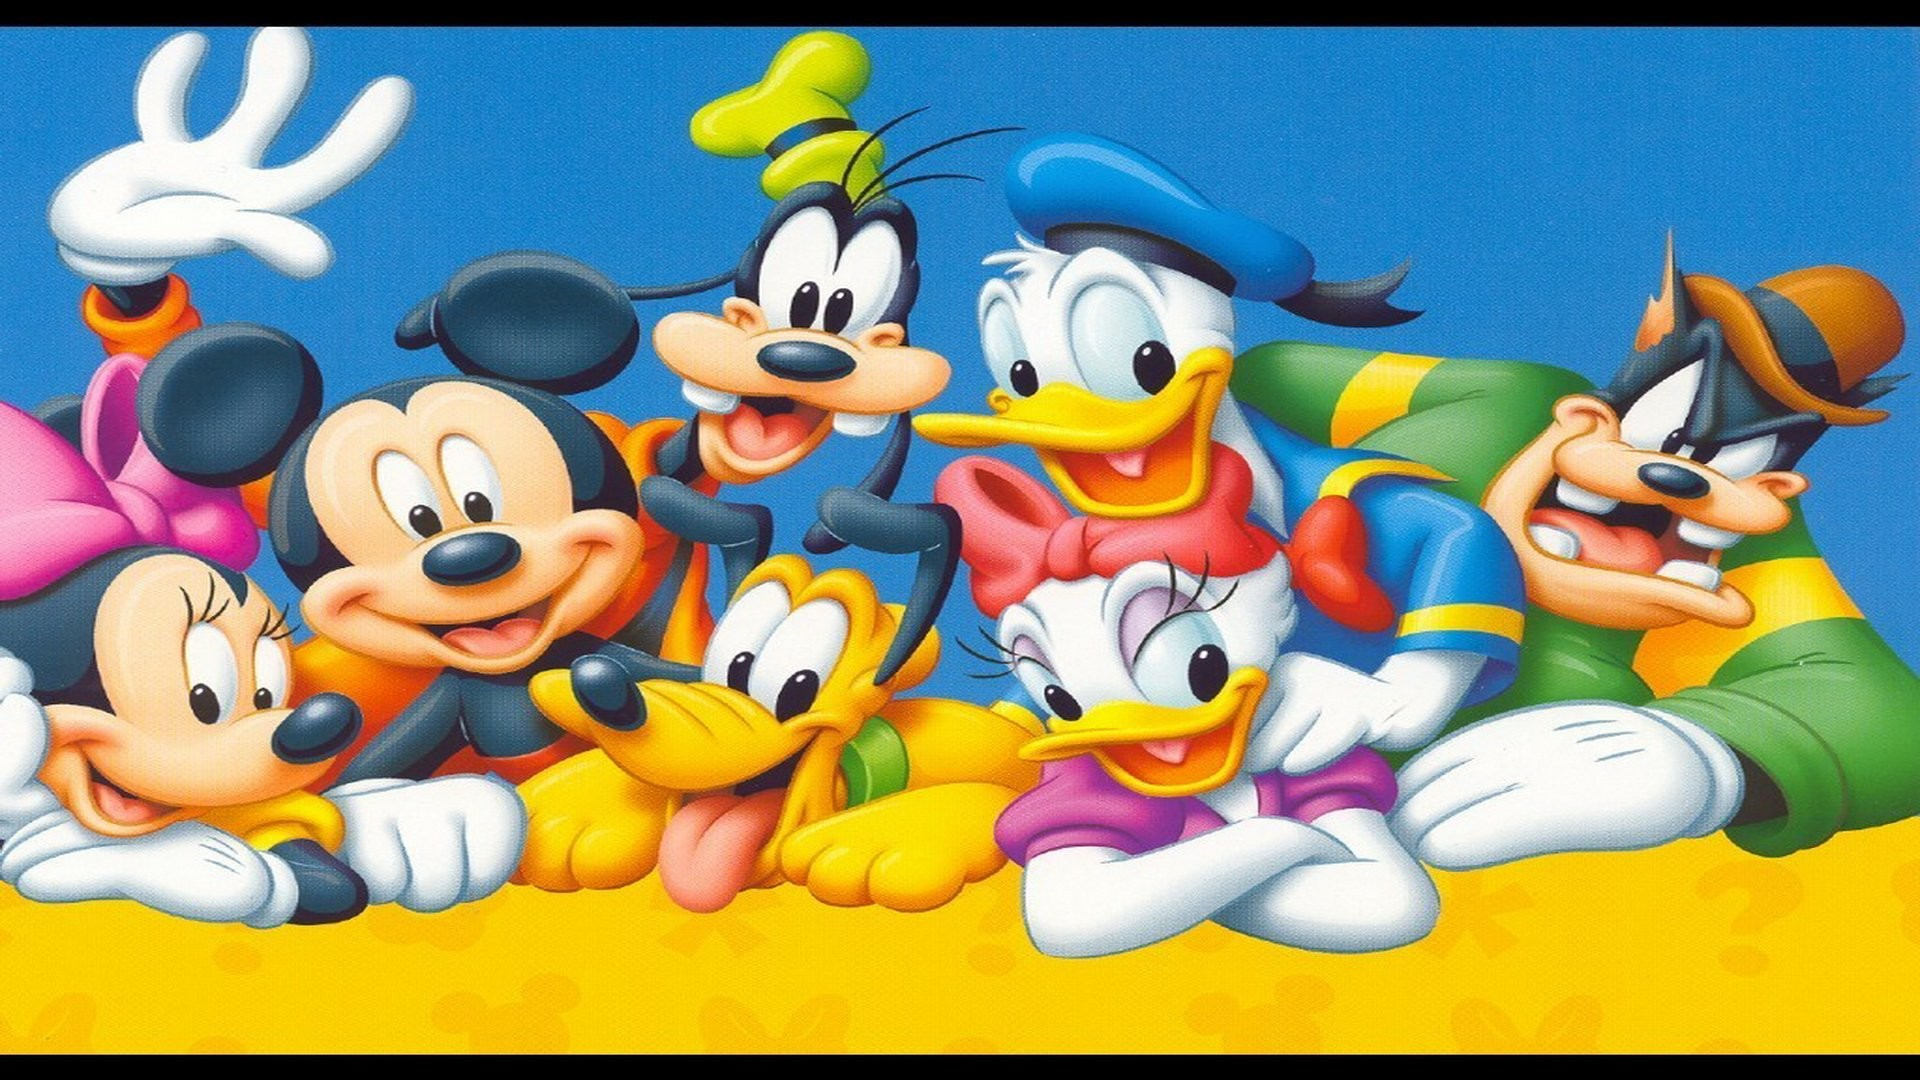 1920x1080 Mickey Mouse And Friends Wallpaper